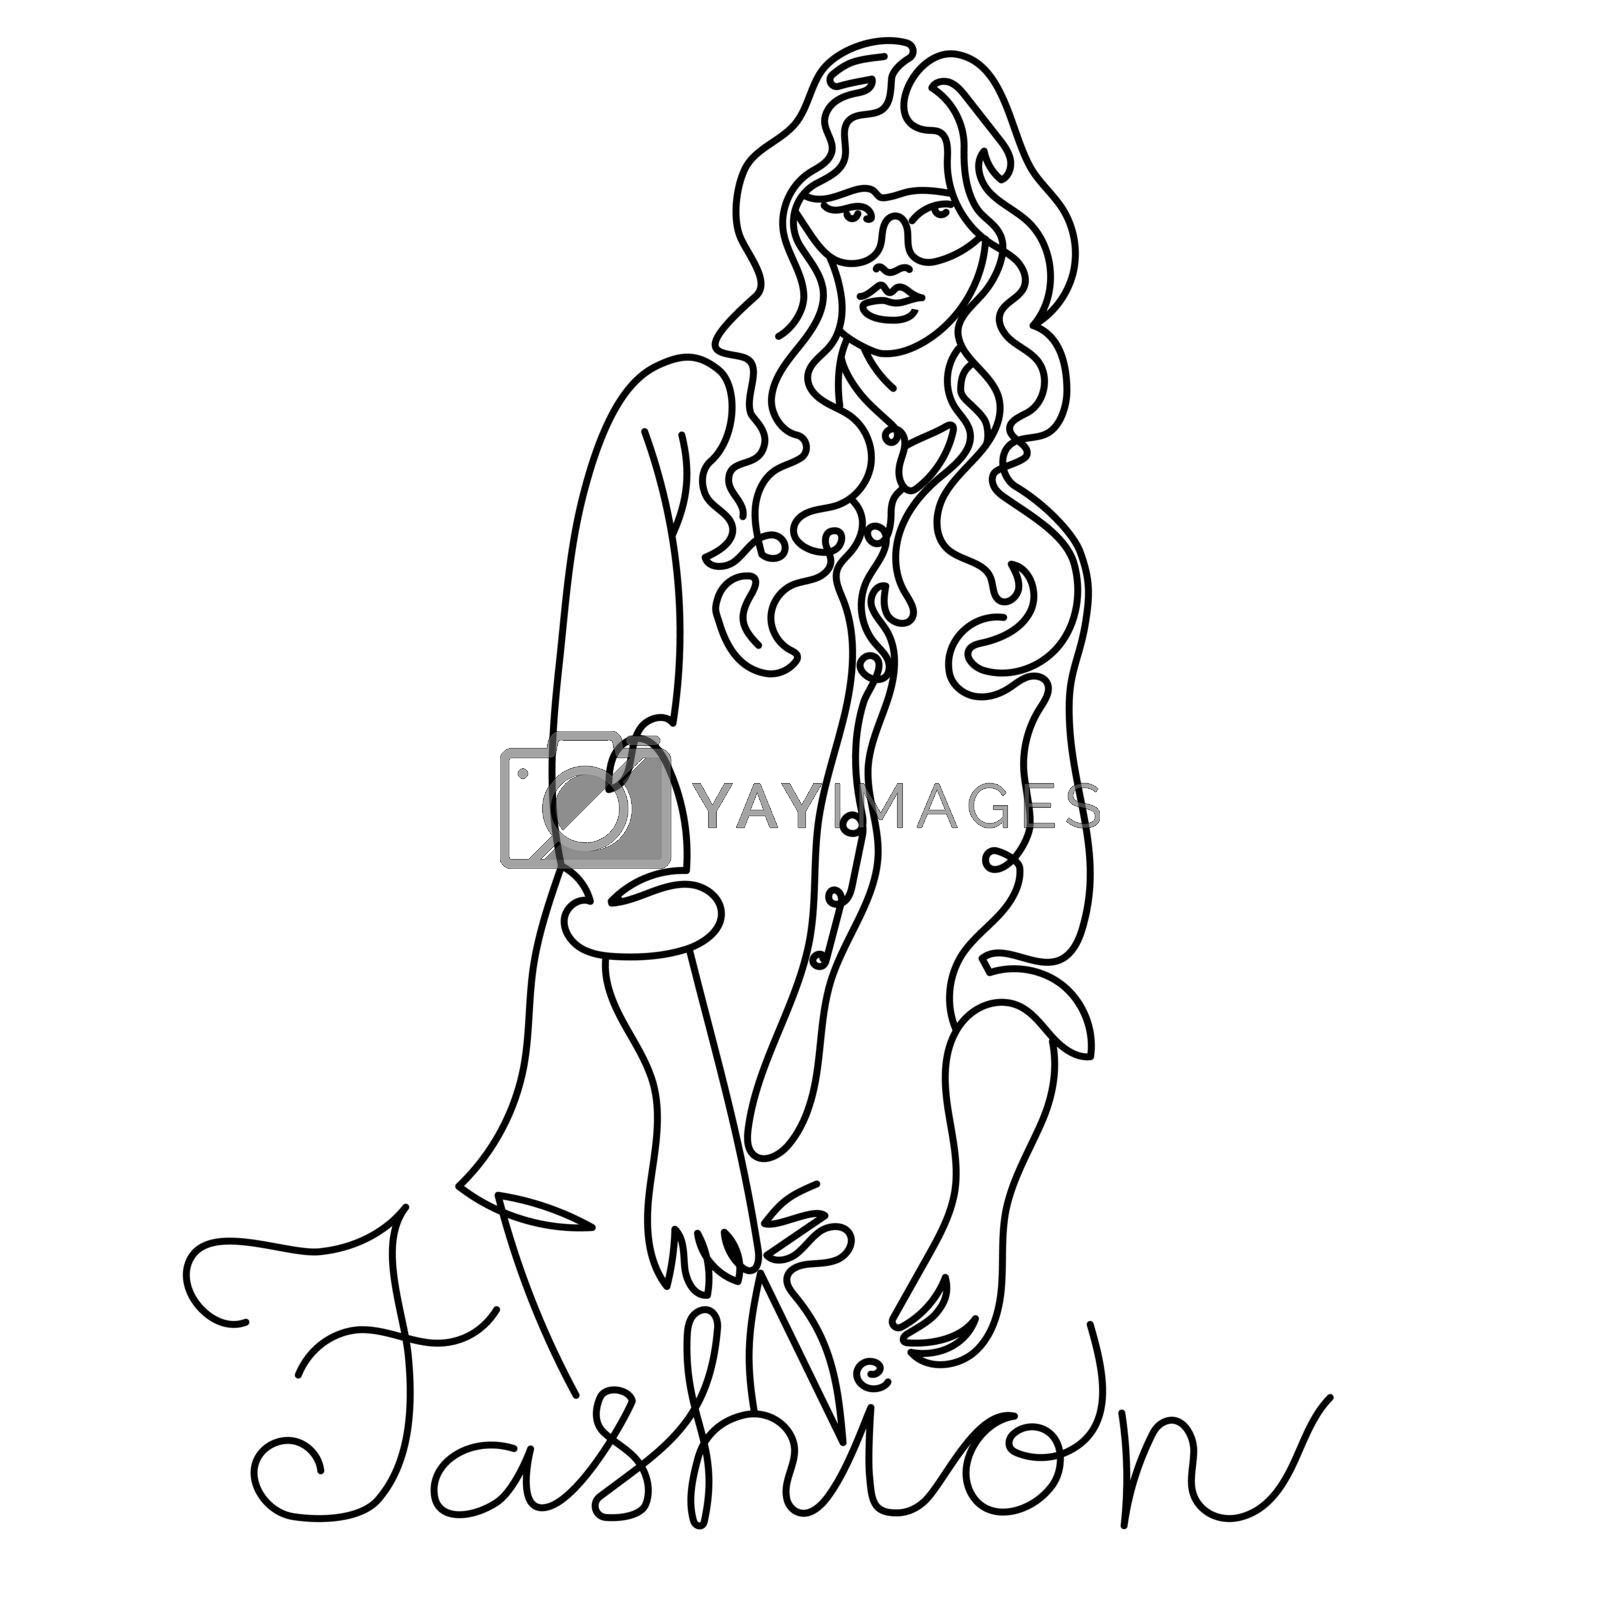 linear illustration of the fashion model girl with handwritten black and white lettering